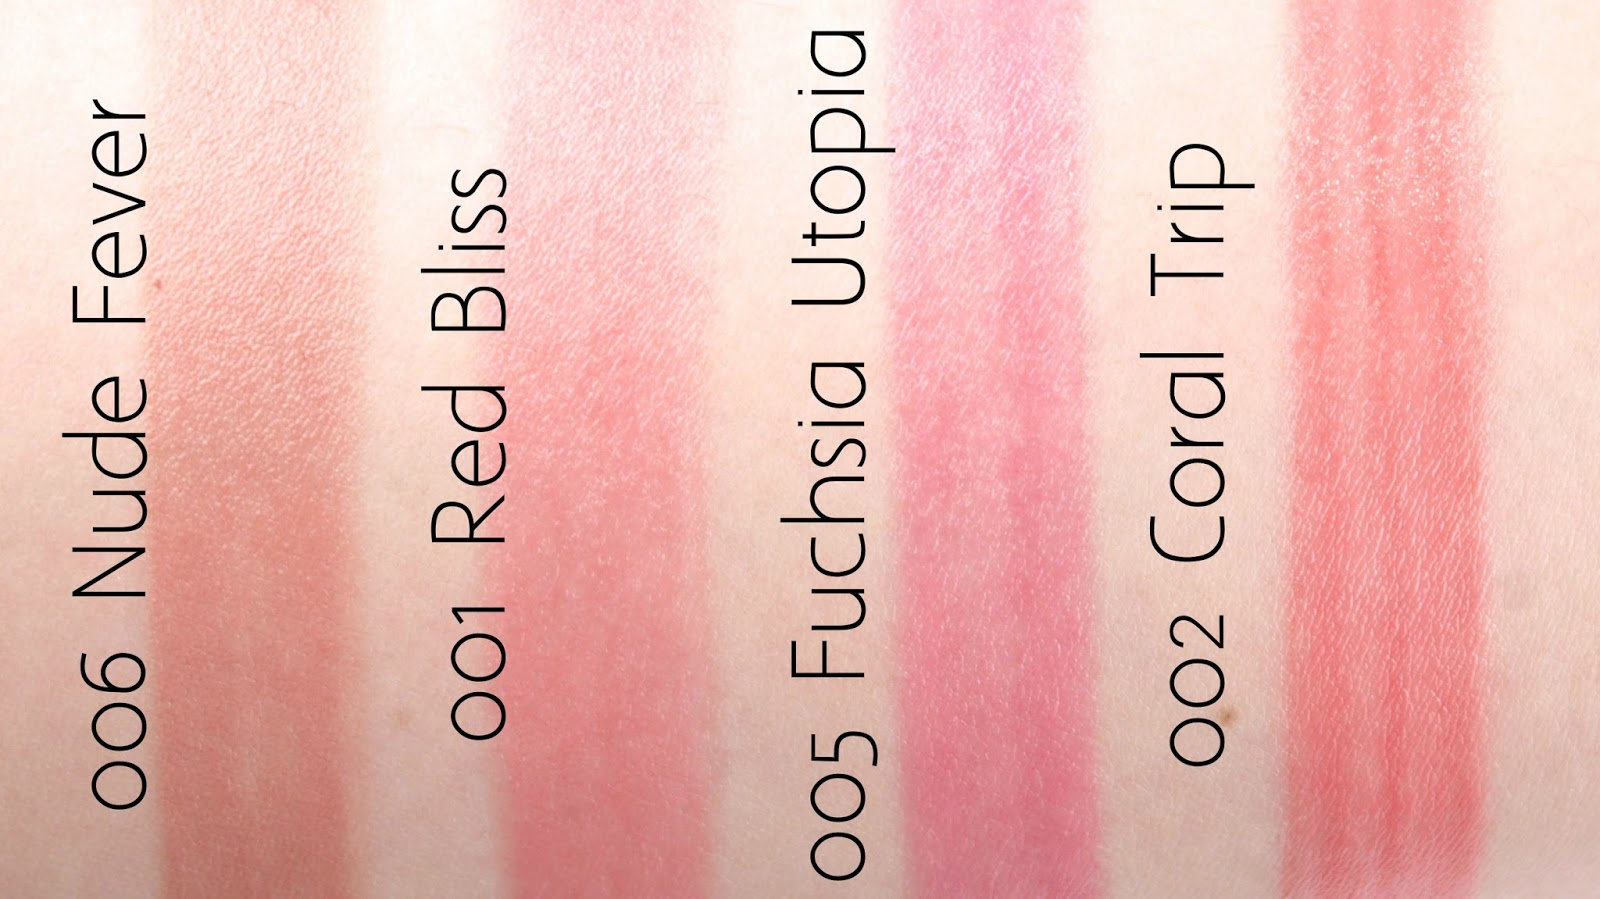 Dior Summer 2015 Tie Dye Collection Dior Addict Tie Dye Lipsticks: Review and Swatches